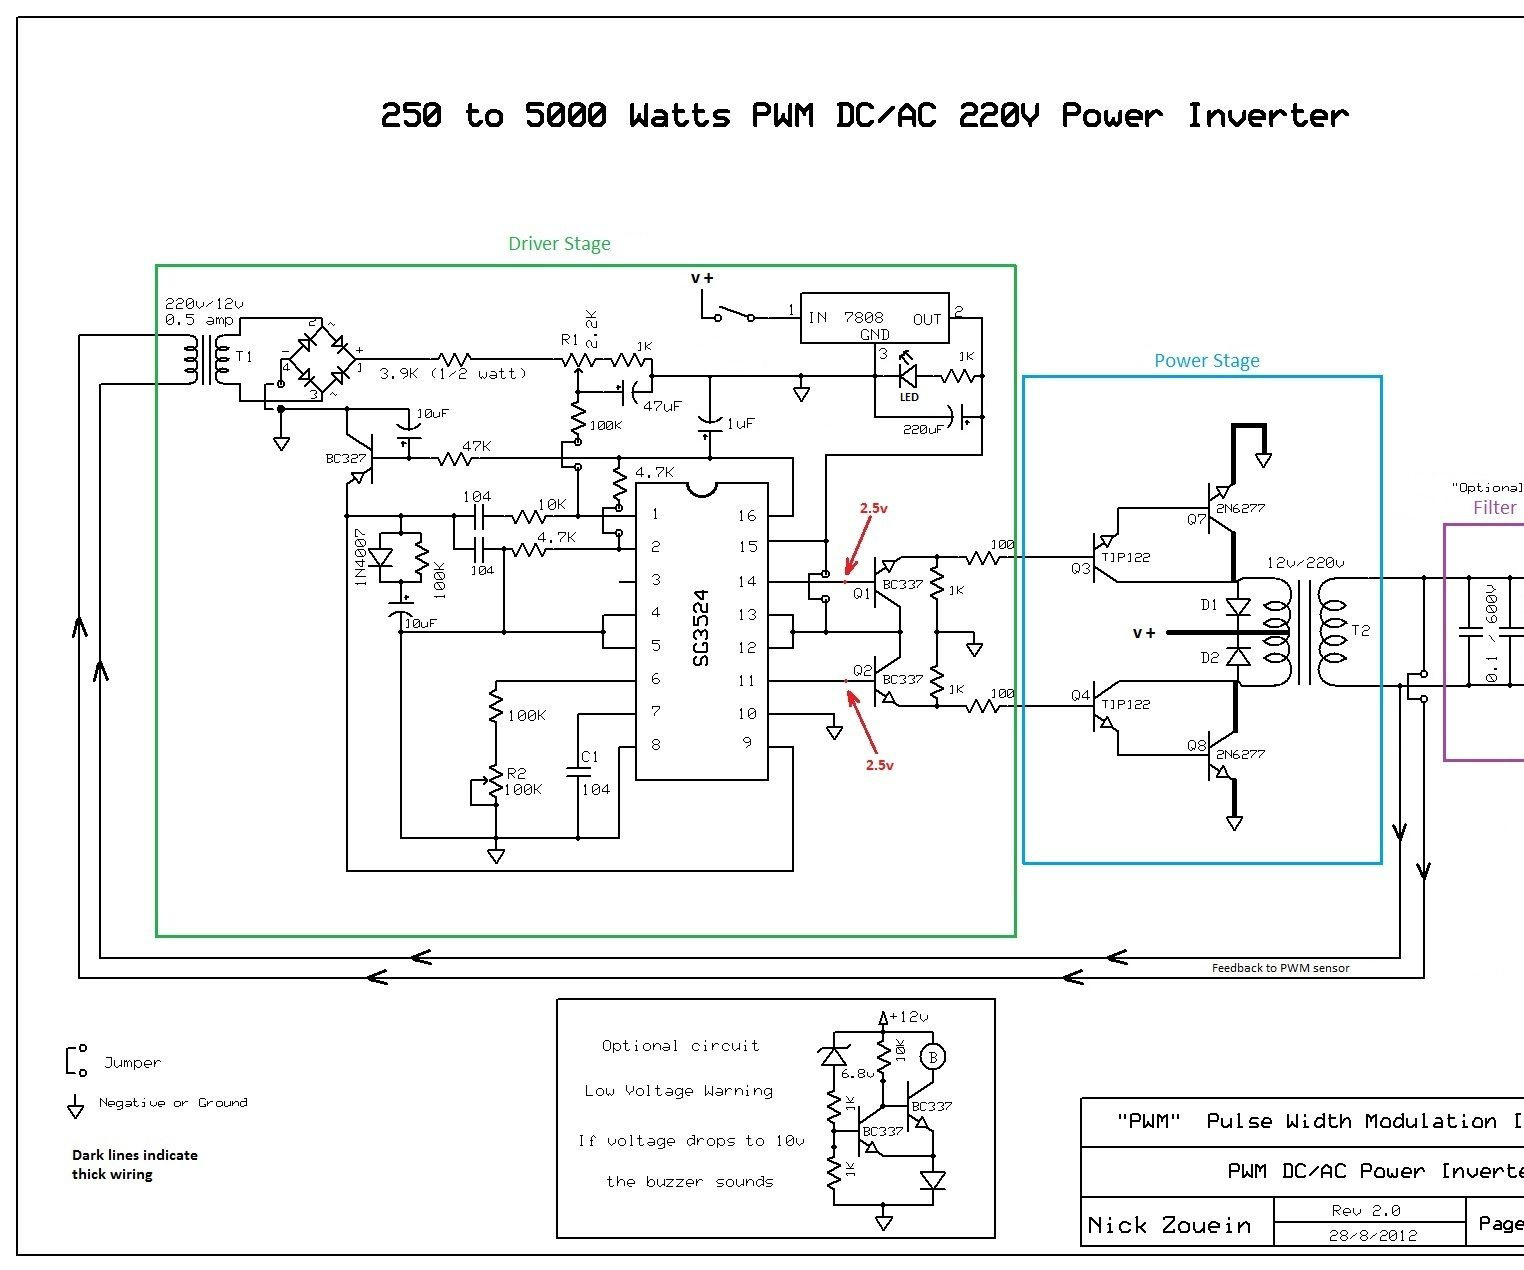 250 to 5000 watts pwm dc ac 220v power inverter dc wiring schematic [ 1524 x 1270 Pixel ]